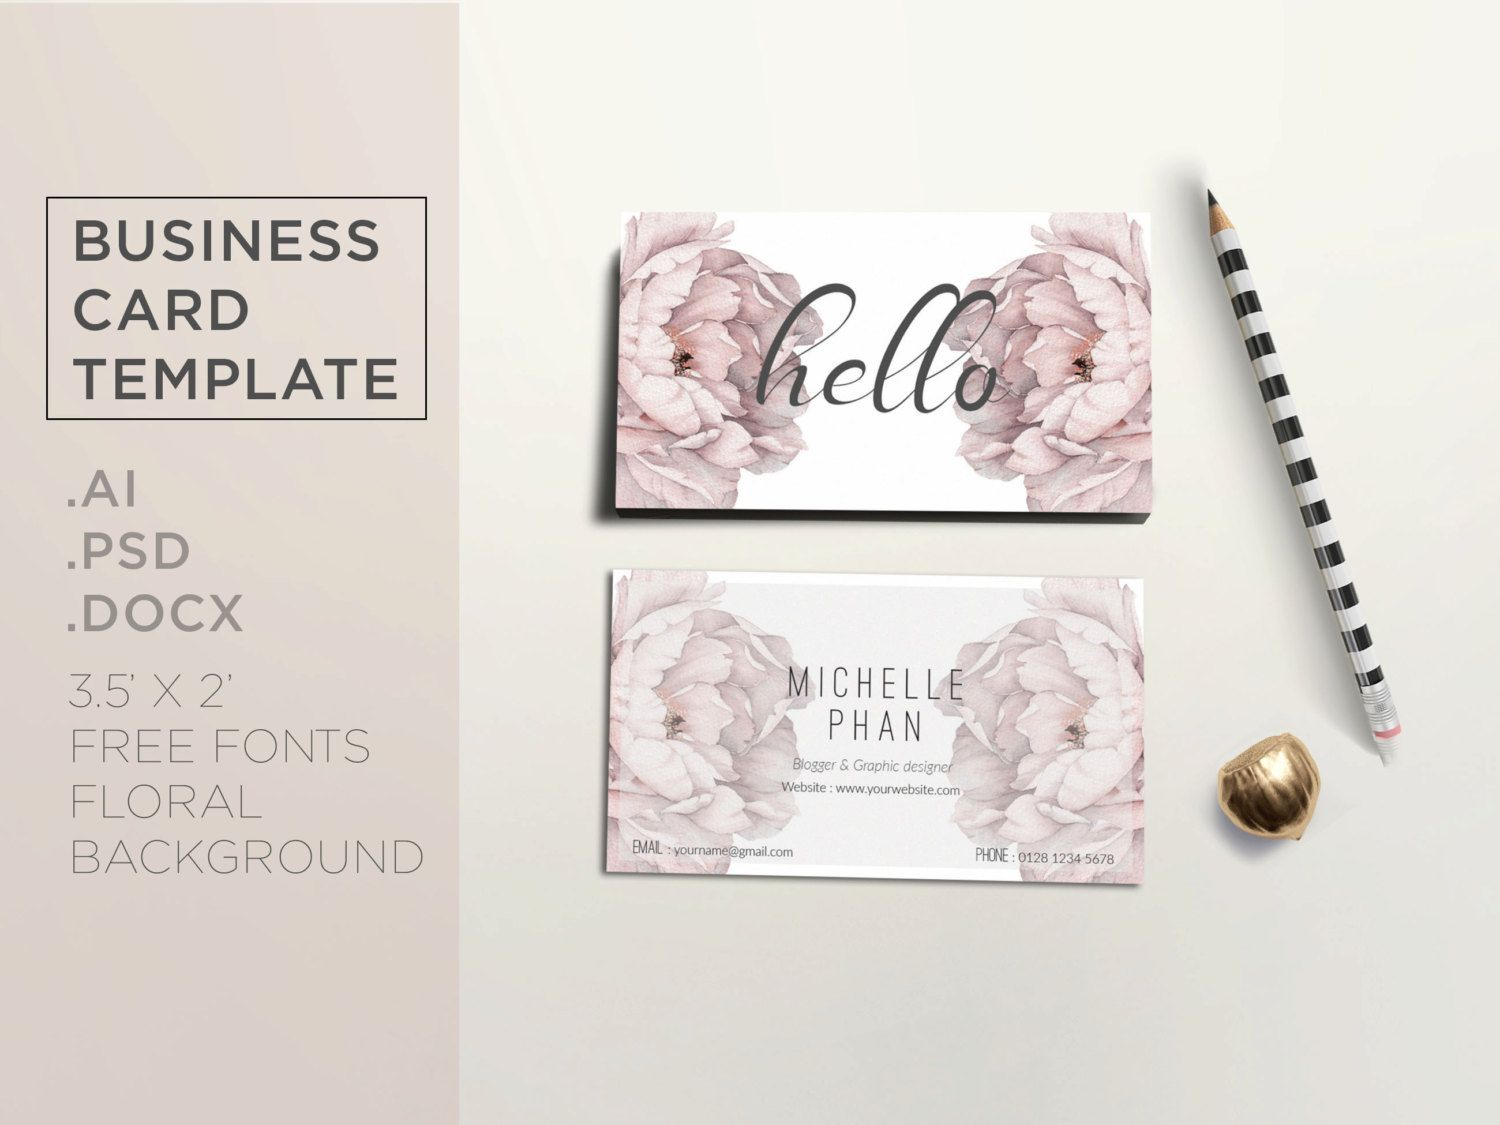 Floral business card template elegant business card design beige elegant business card template templates beautiful creative business card design x professional way to present your business an by chic templates flashek Choice Image